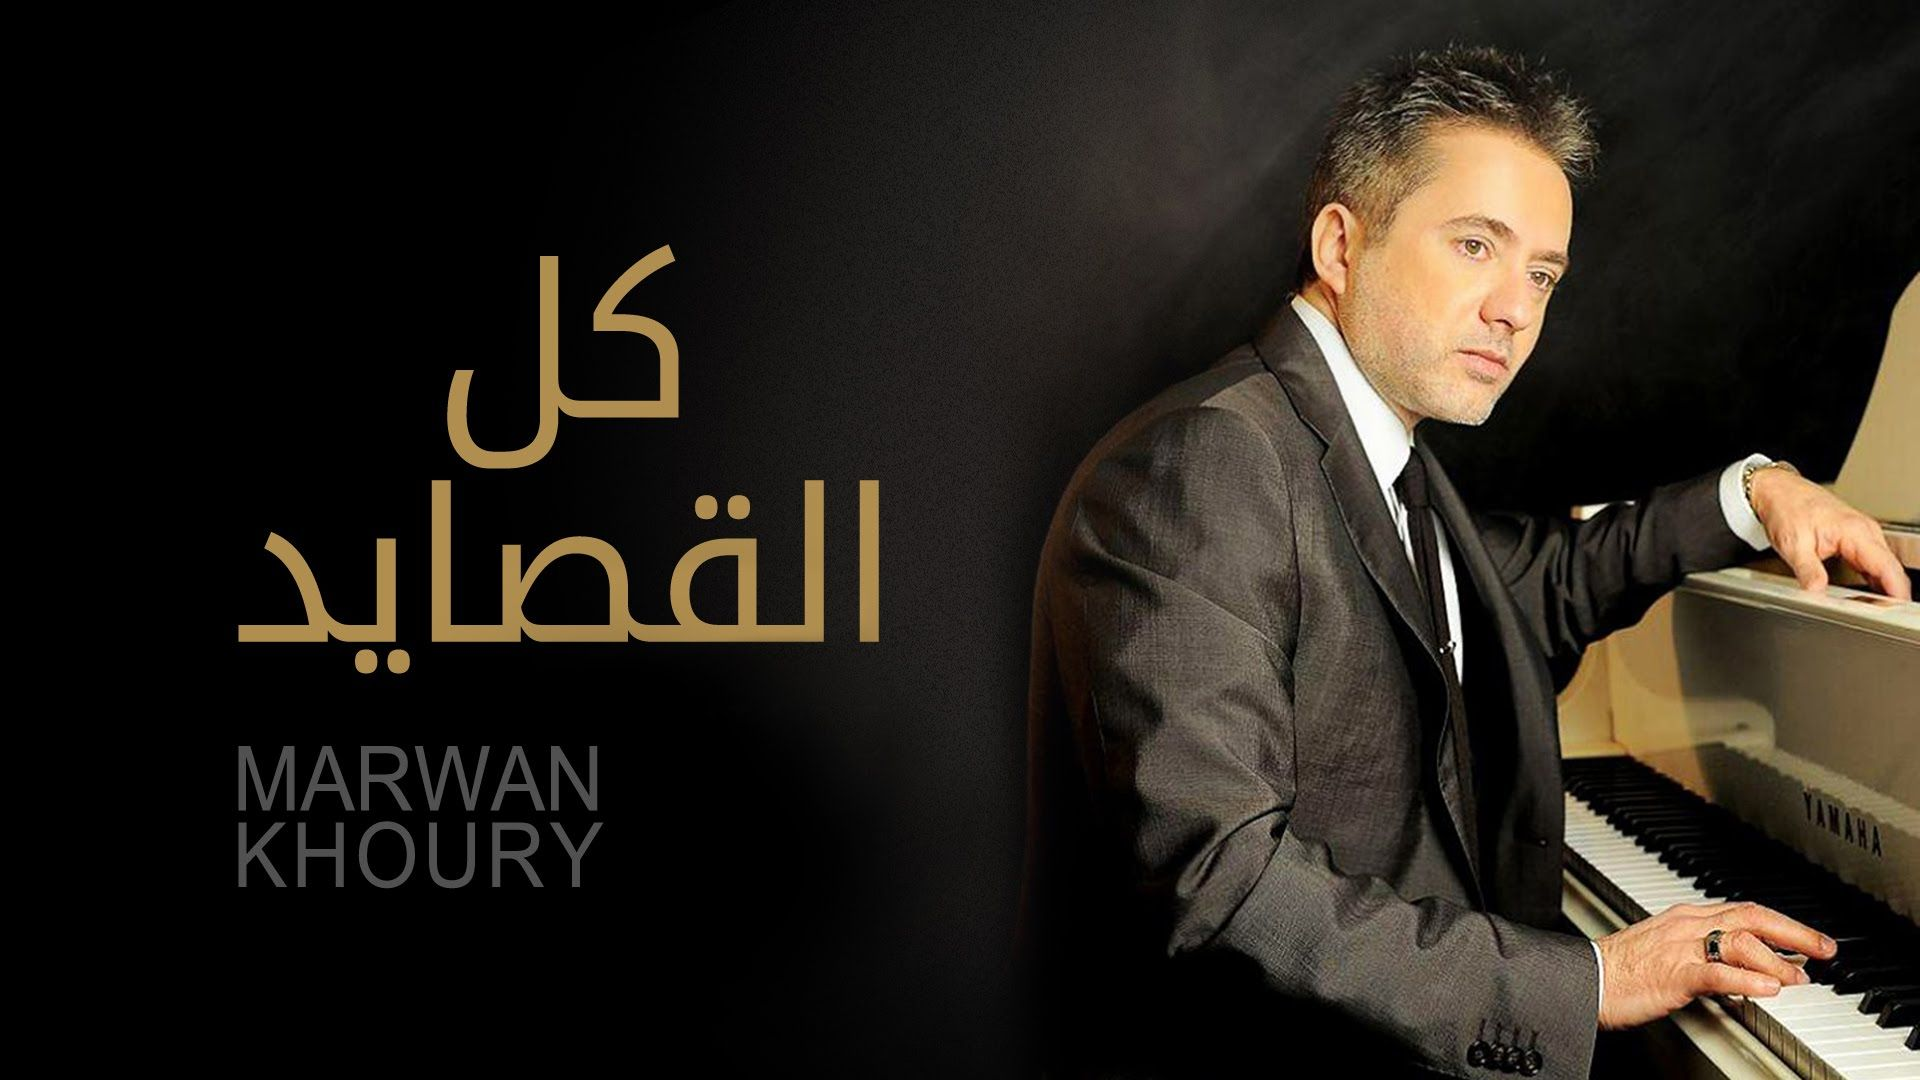 Marwan Khoury - Kel El Qasayed (Official Audio) - (مروان خوري - كل · Music  SongsAudio